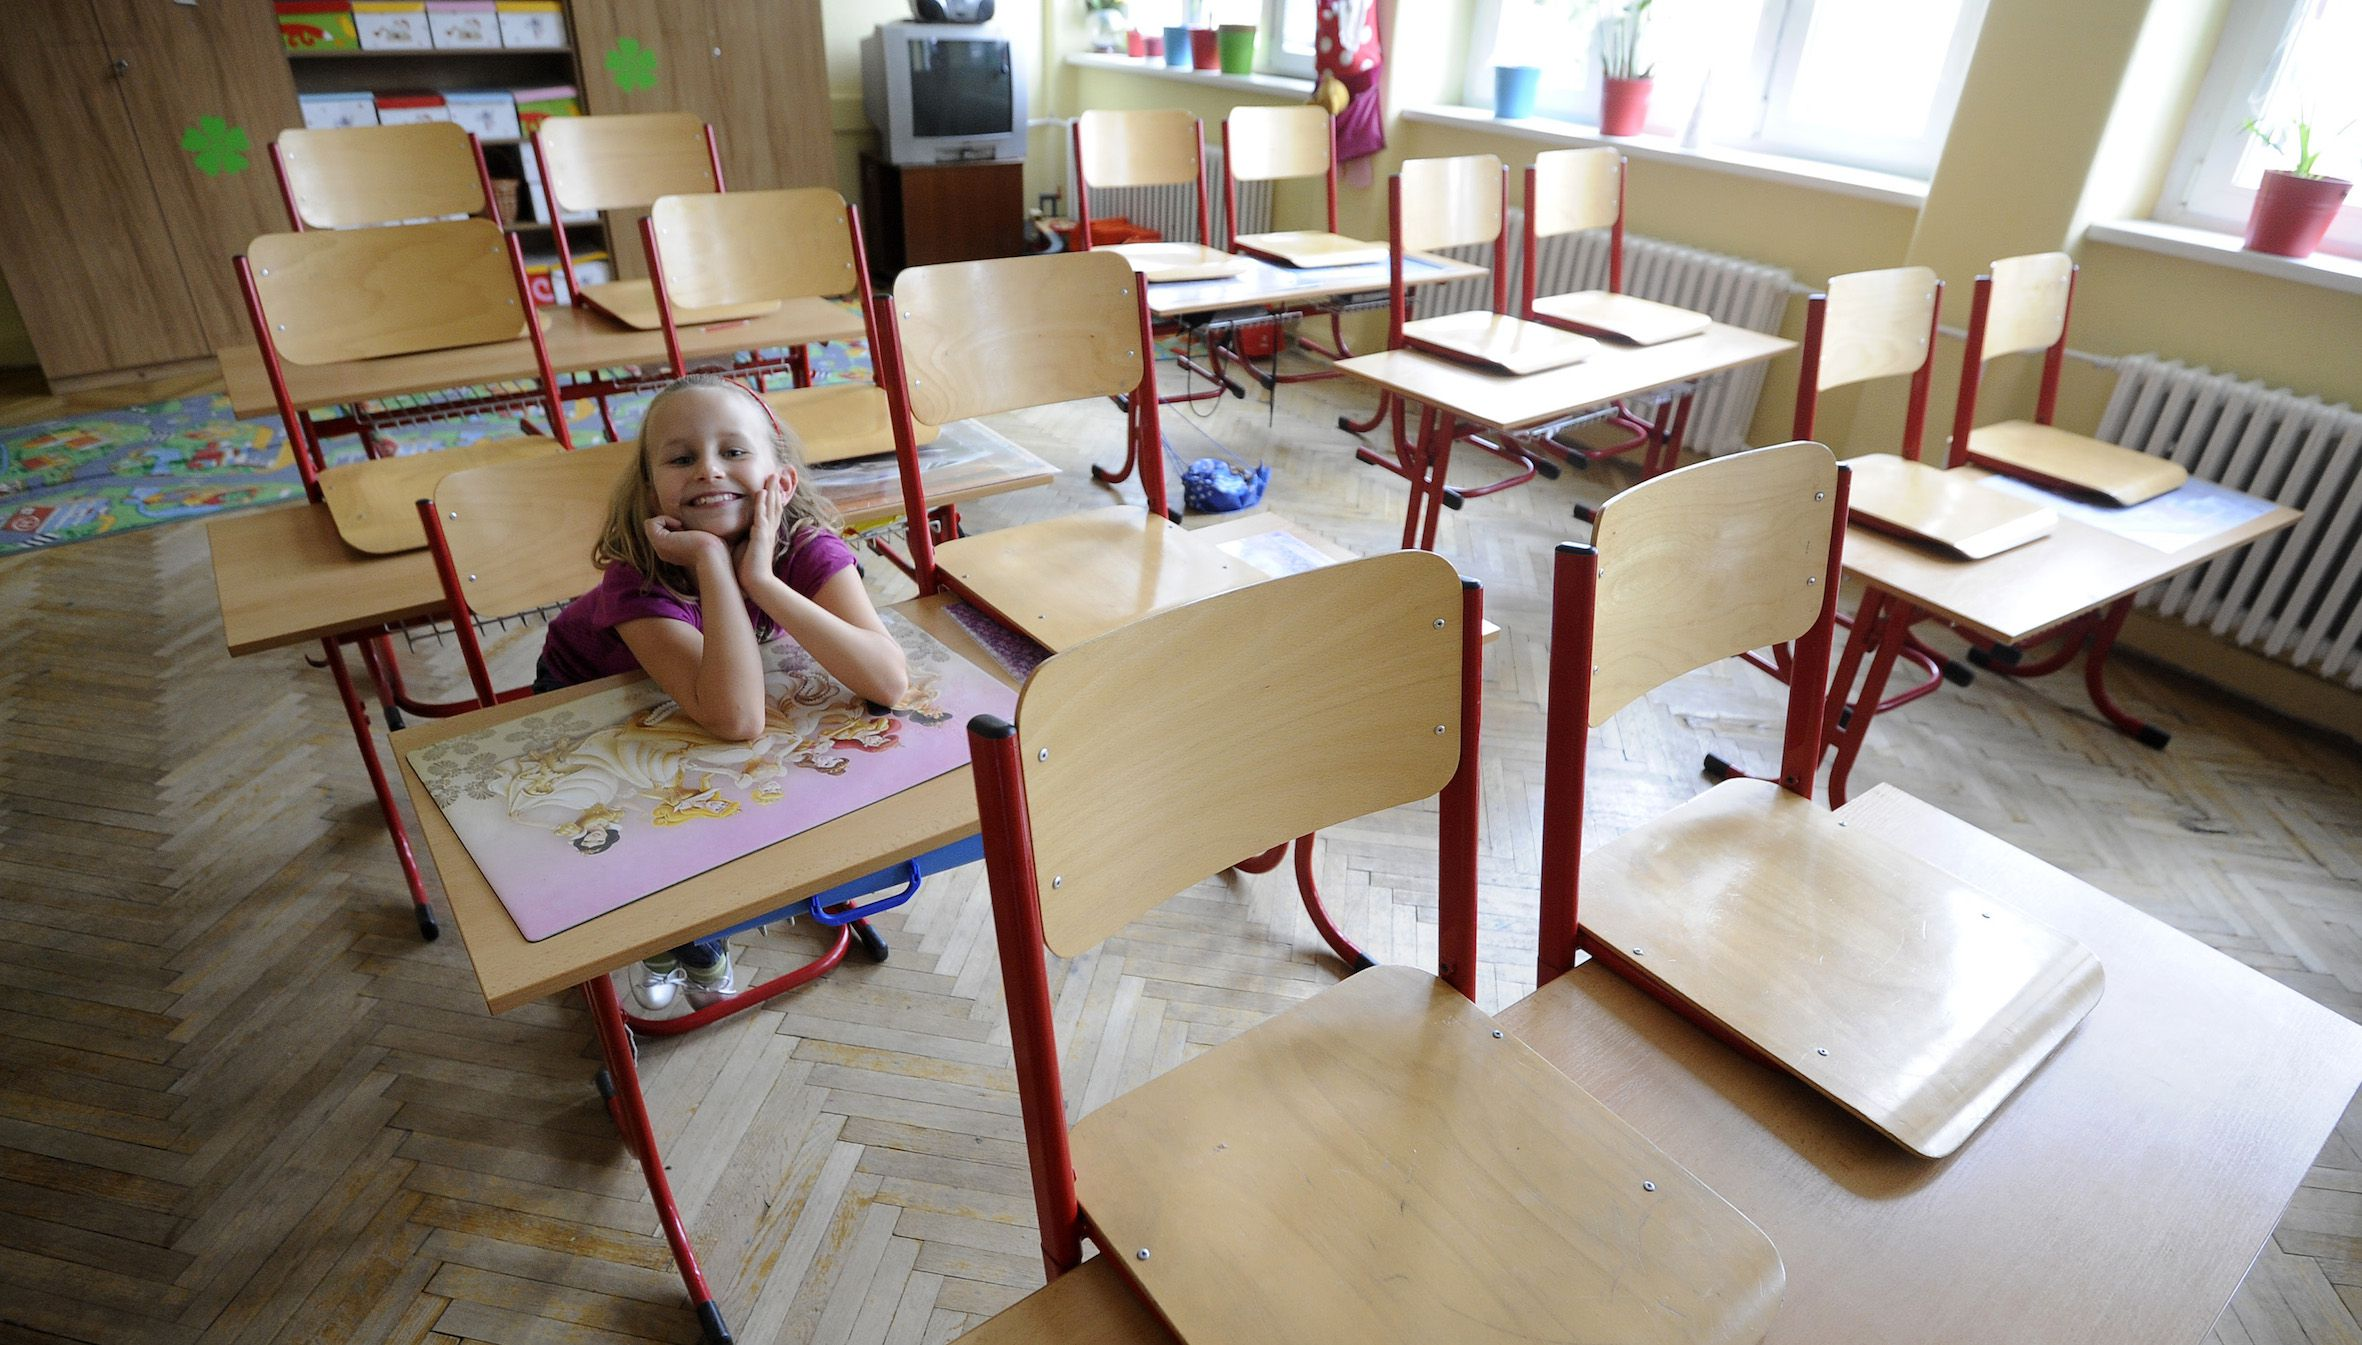 Primary school student Mia (7) smiles inside a classroom in an empty school, closed during a one-day strike by local teachers seeking higher salaries and better work conditions, in Bratislava September 13, 2012. Mia, along with other children whose parents were unable to take care of them during the strike on Wednesday, were placed in the care of volunteers who offered their services to take care of them. REUTERS/Radovan Stoklasa (SLOVAKIA - Tags: EDUCATION CIVIL UNREST BUSINESS EMPLOYMENT) - RTR37WZ5